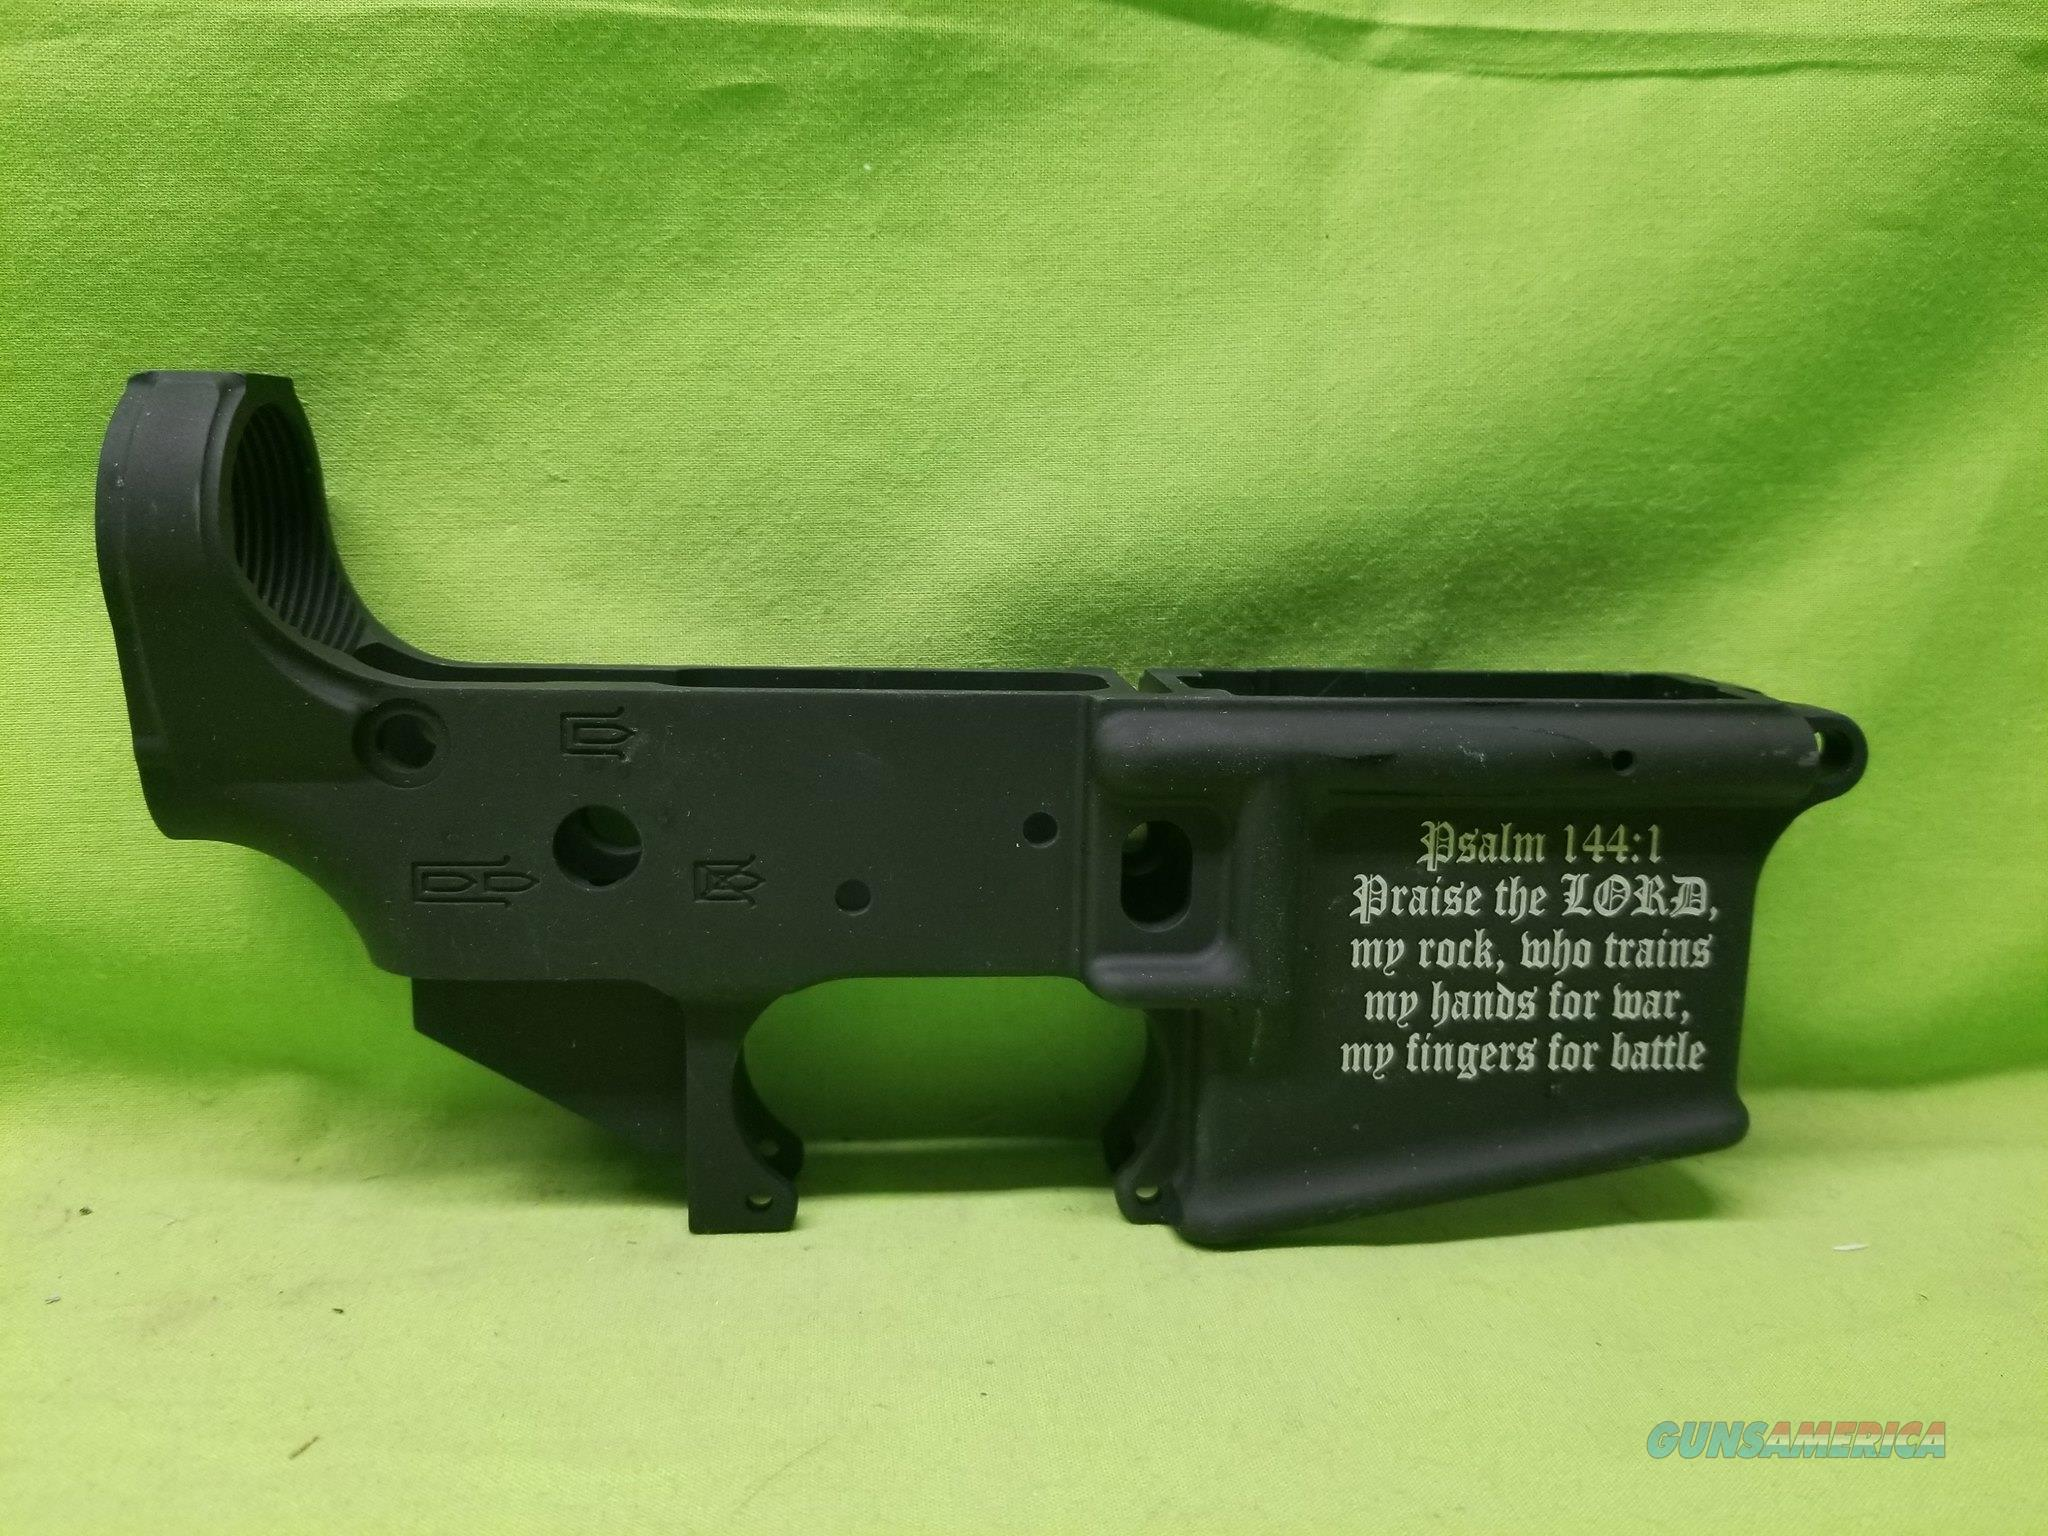 AA TACTICAL TAC-L WING STRIPPED LOWER PSALM 144:1  Guns > Rifles > AR-15 Rifles - Small Manufacturers > Lower Only